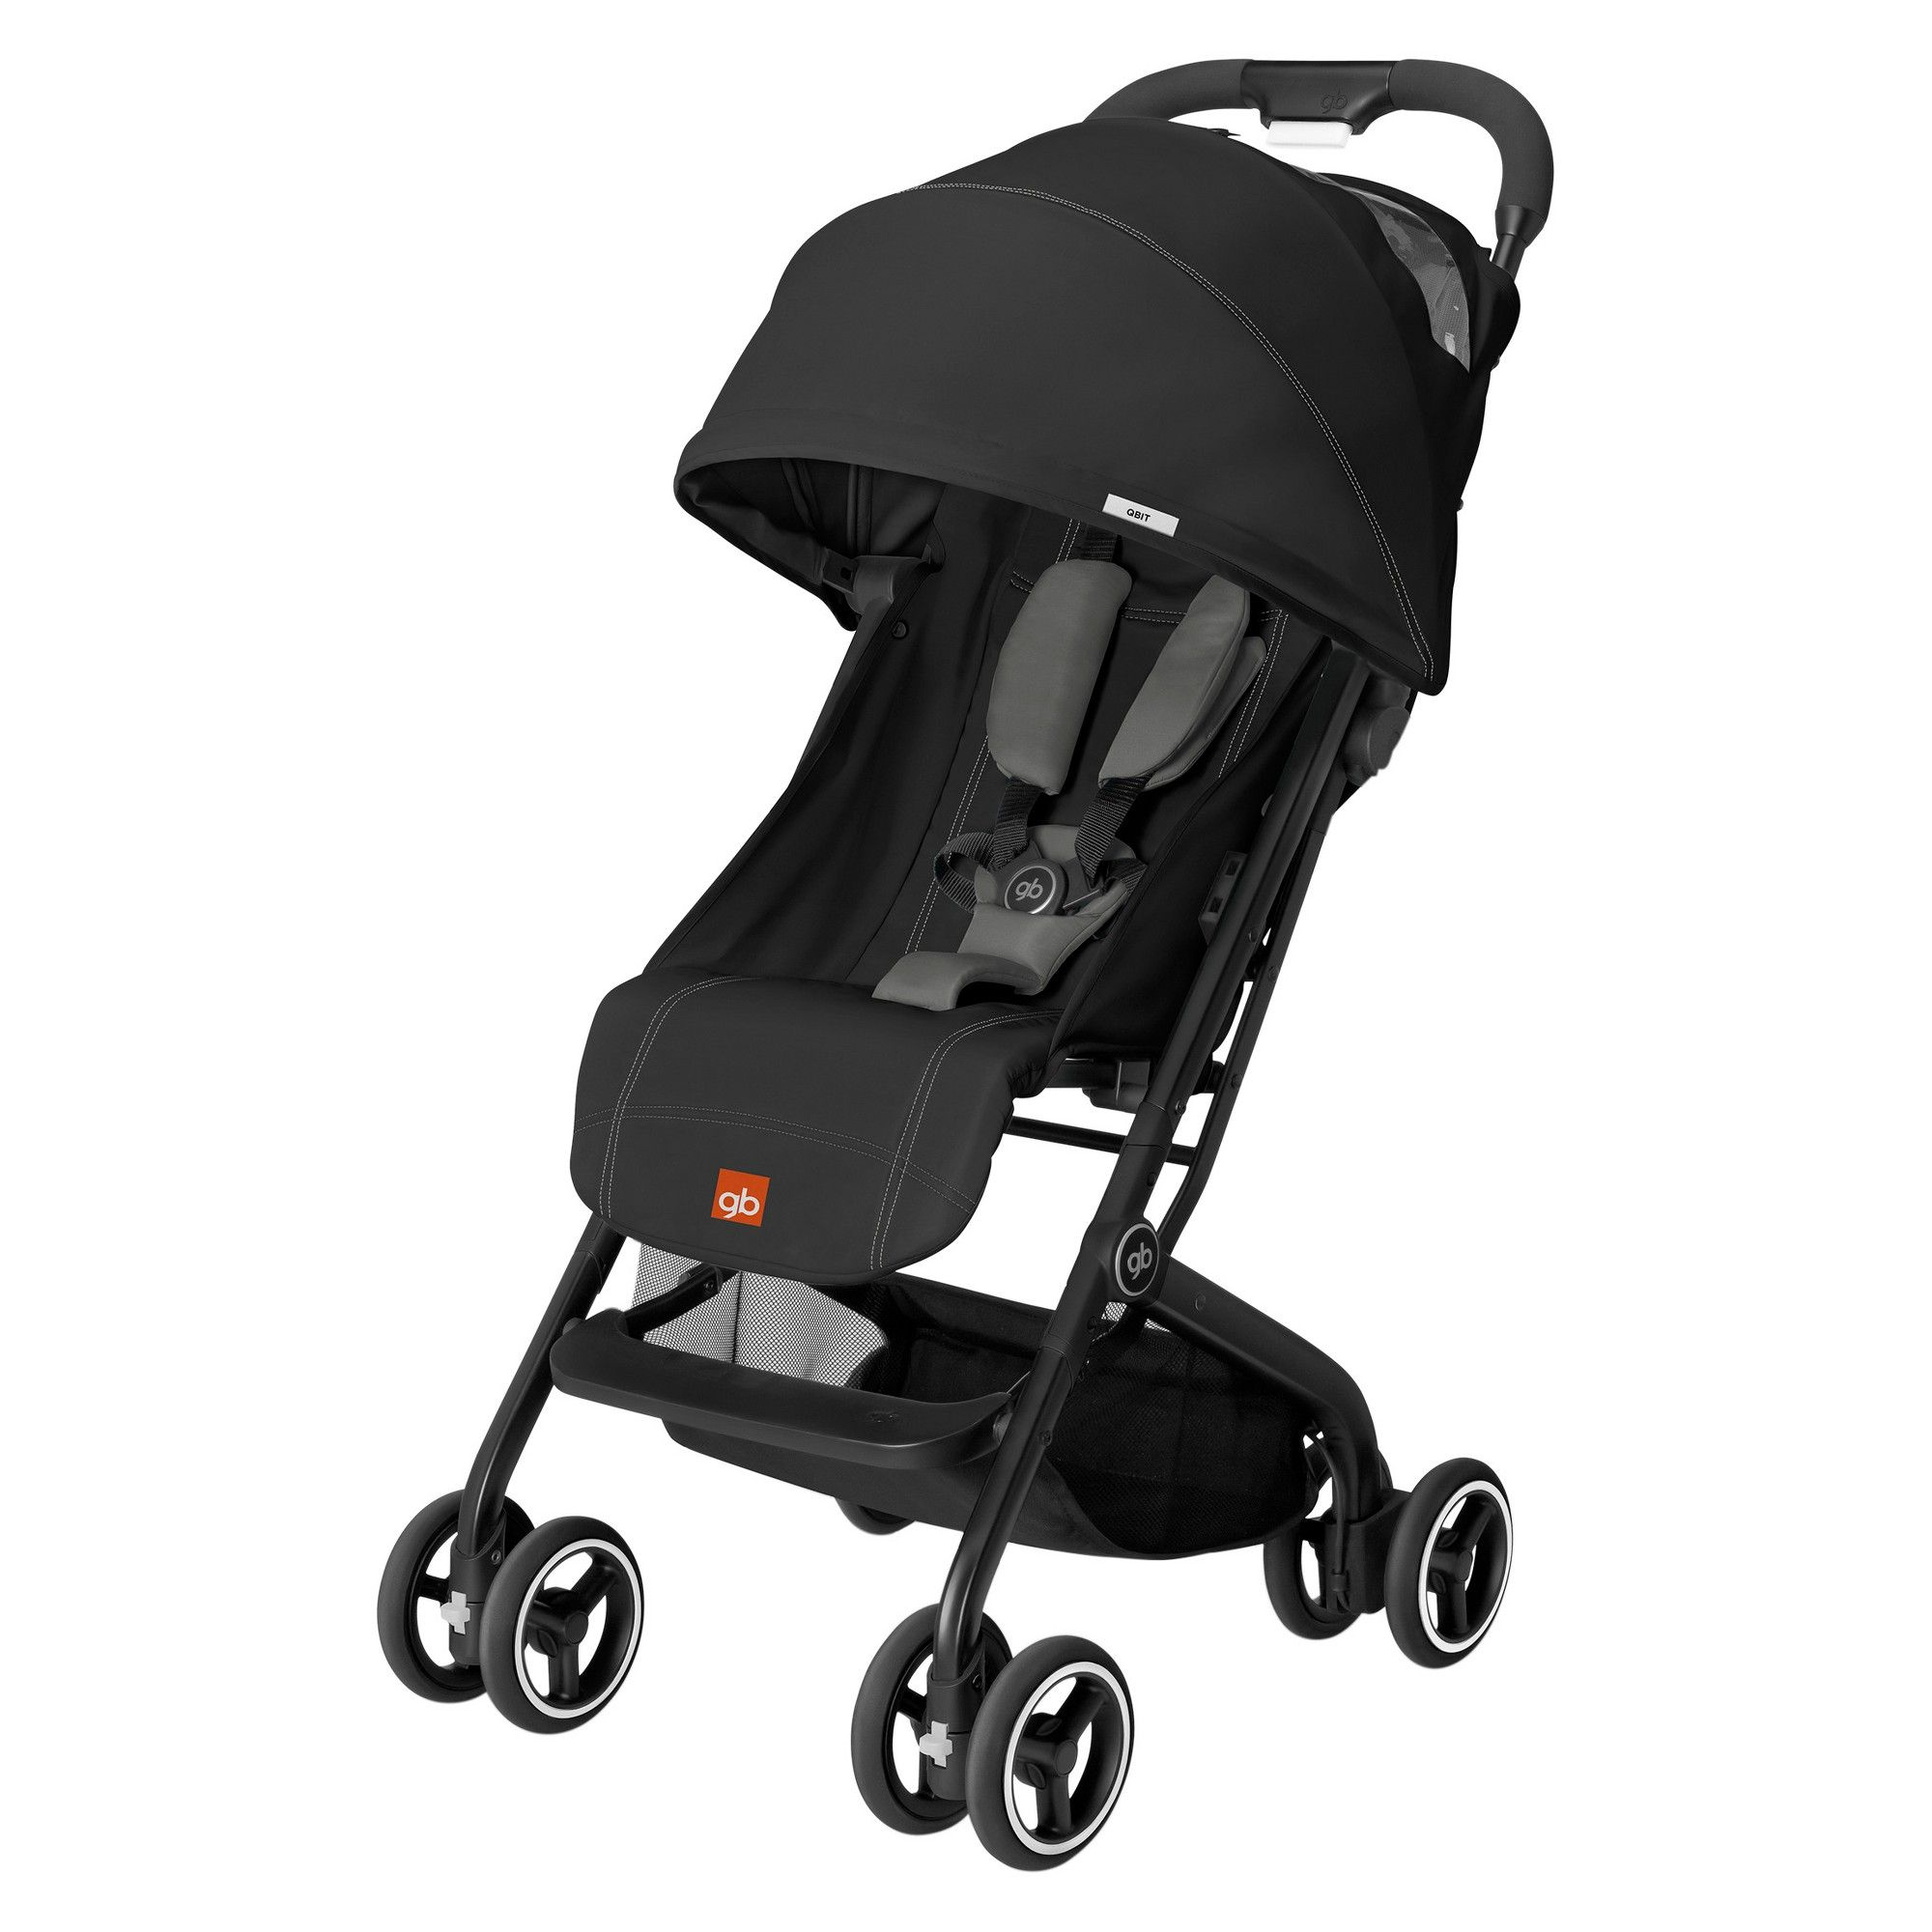 GB Qbit Stroller Monument Black Travel stroller, Urban